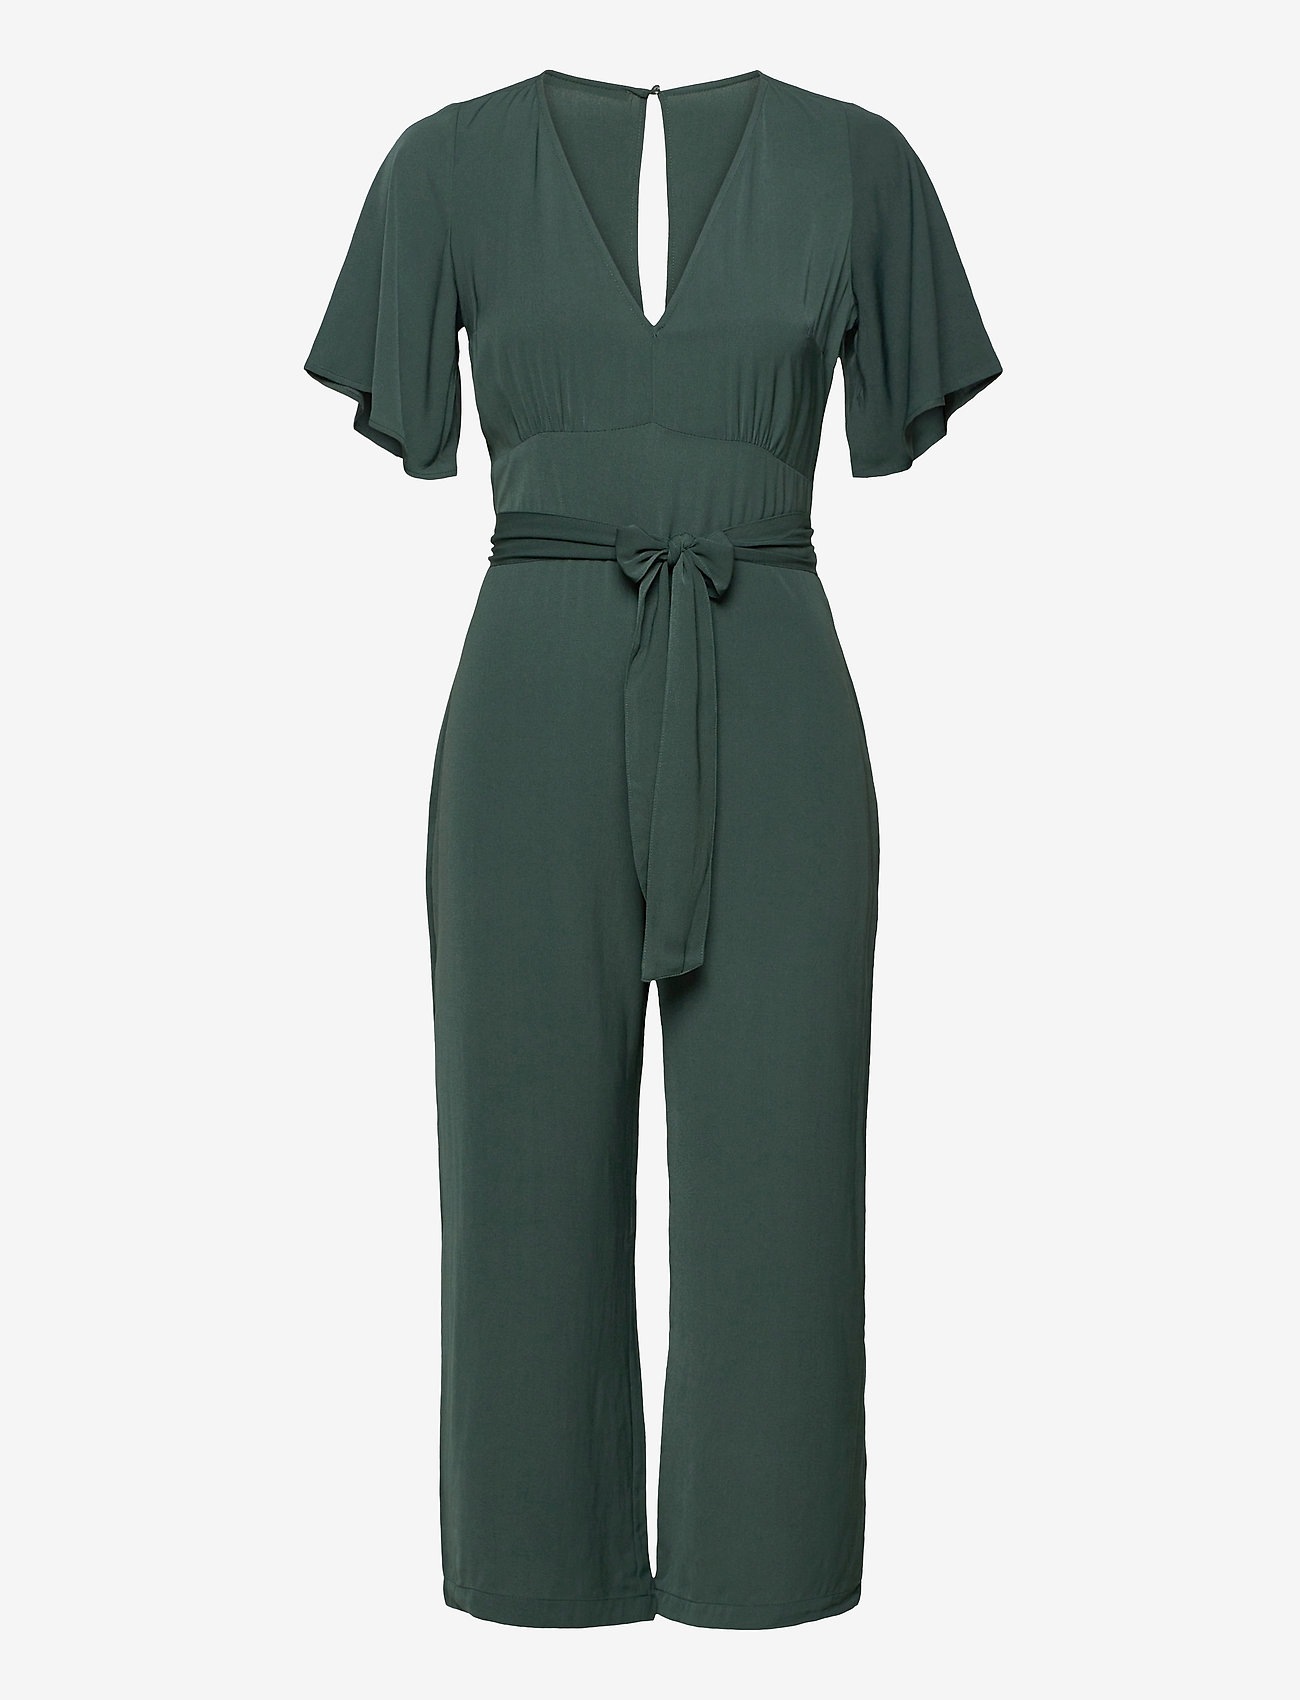 Abercrombie & Fitch - ANF WOMENS DRESSES - jumpsuits - green dd - 0